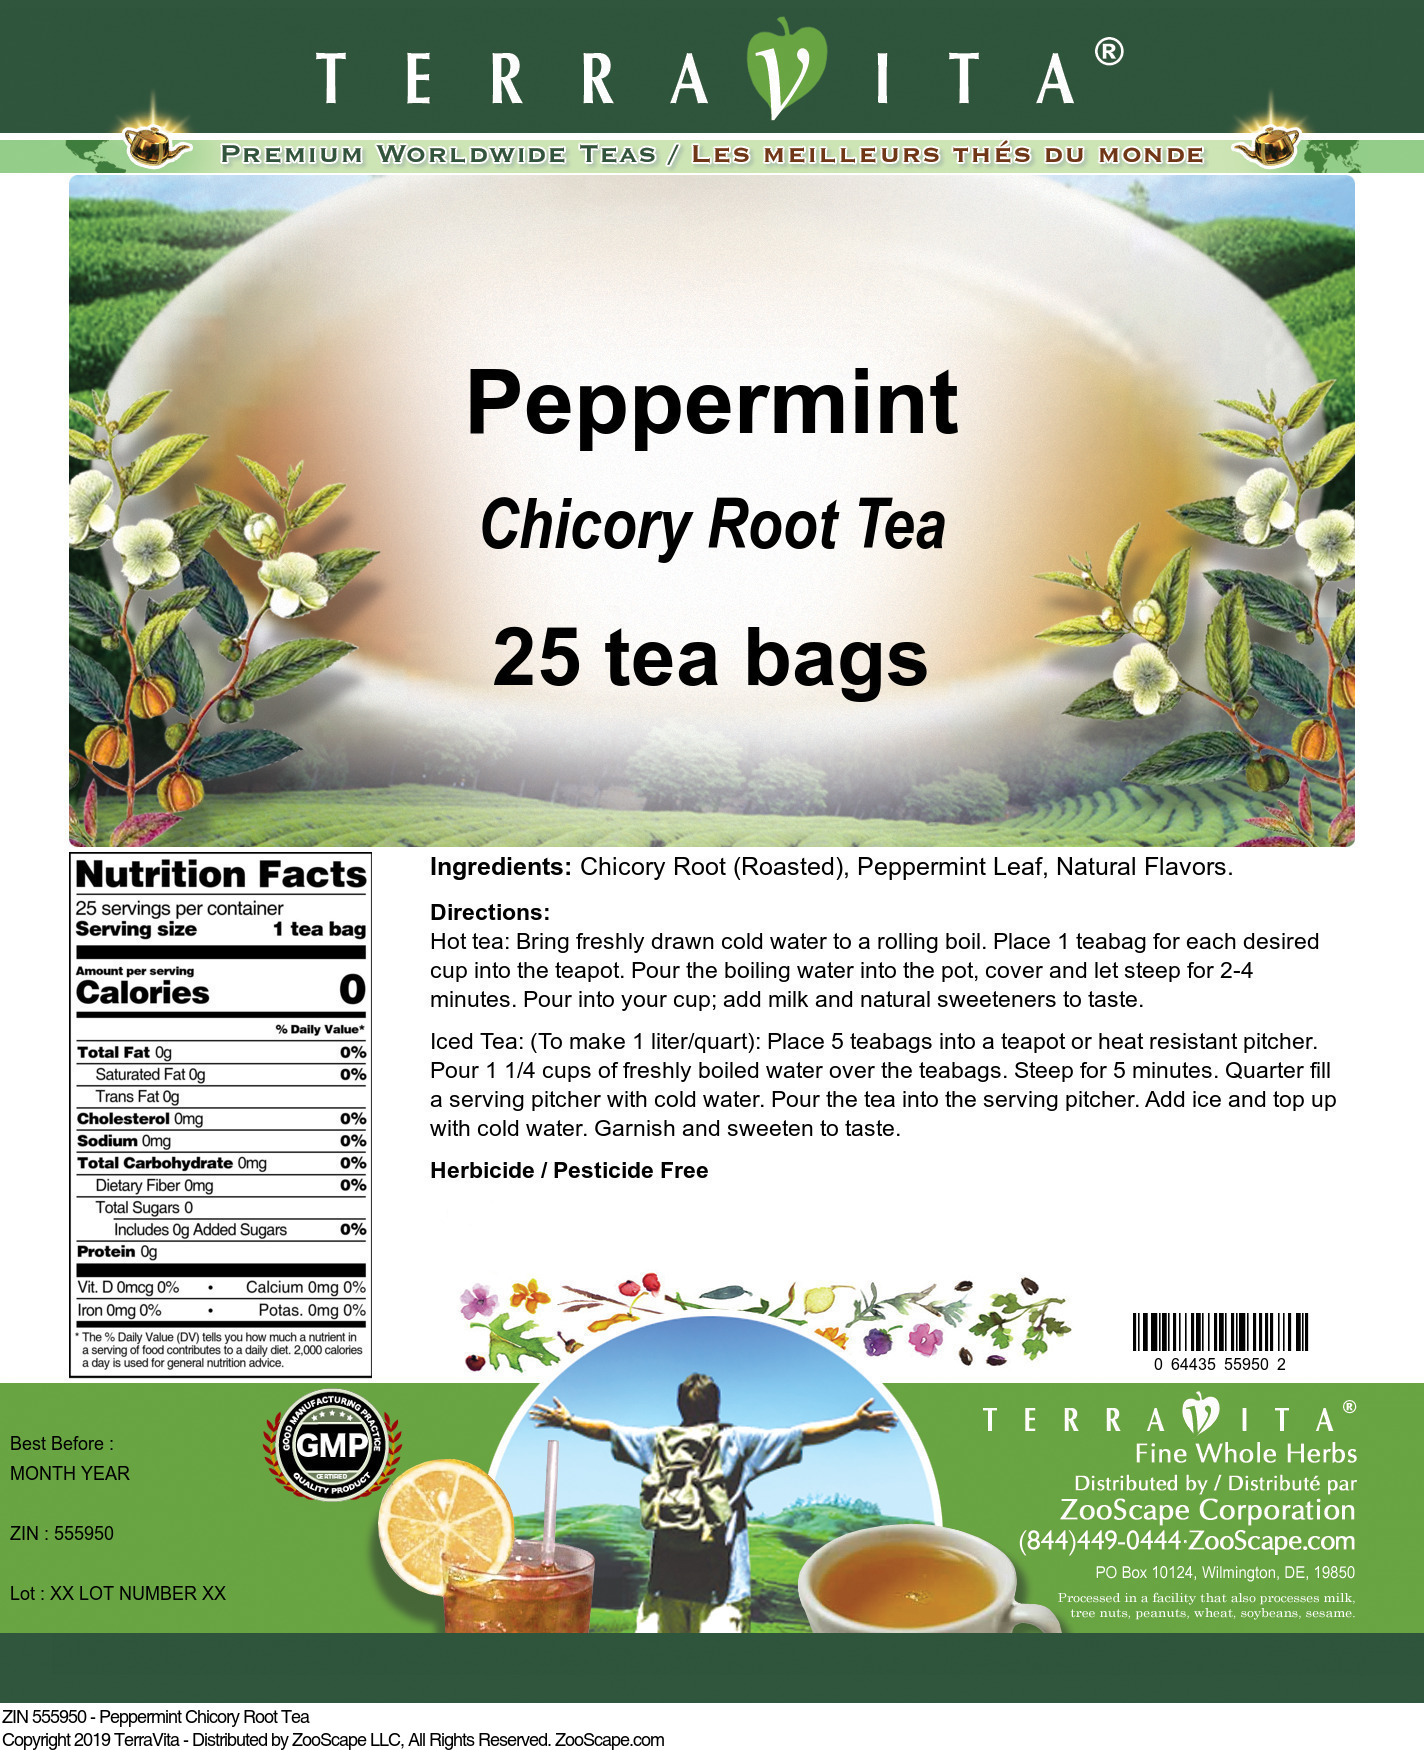 Peppermint Chicory Root